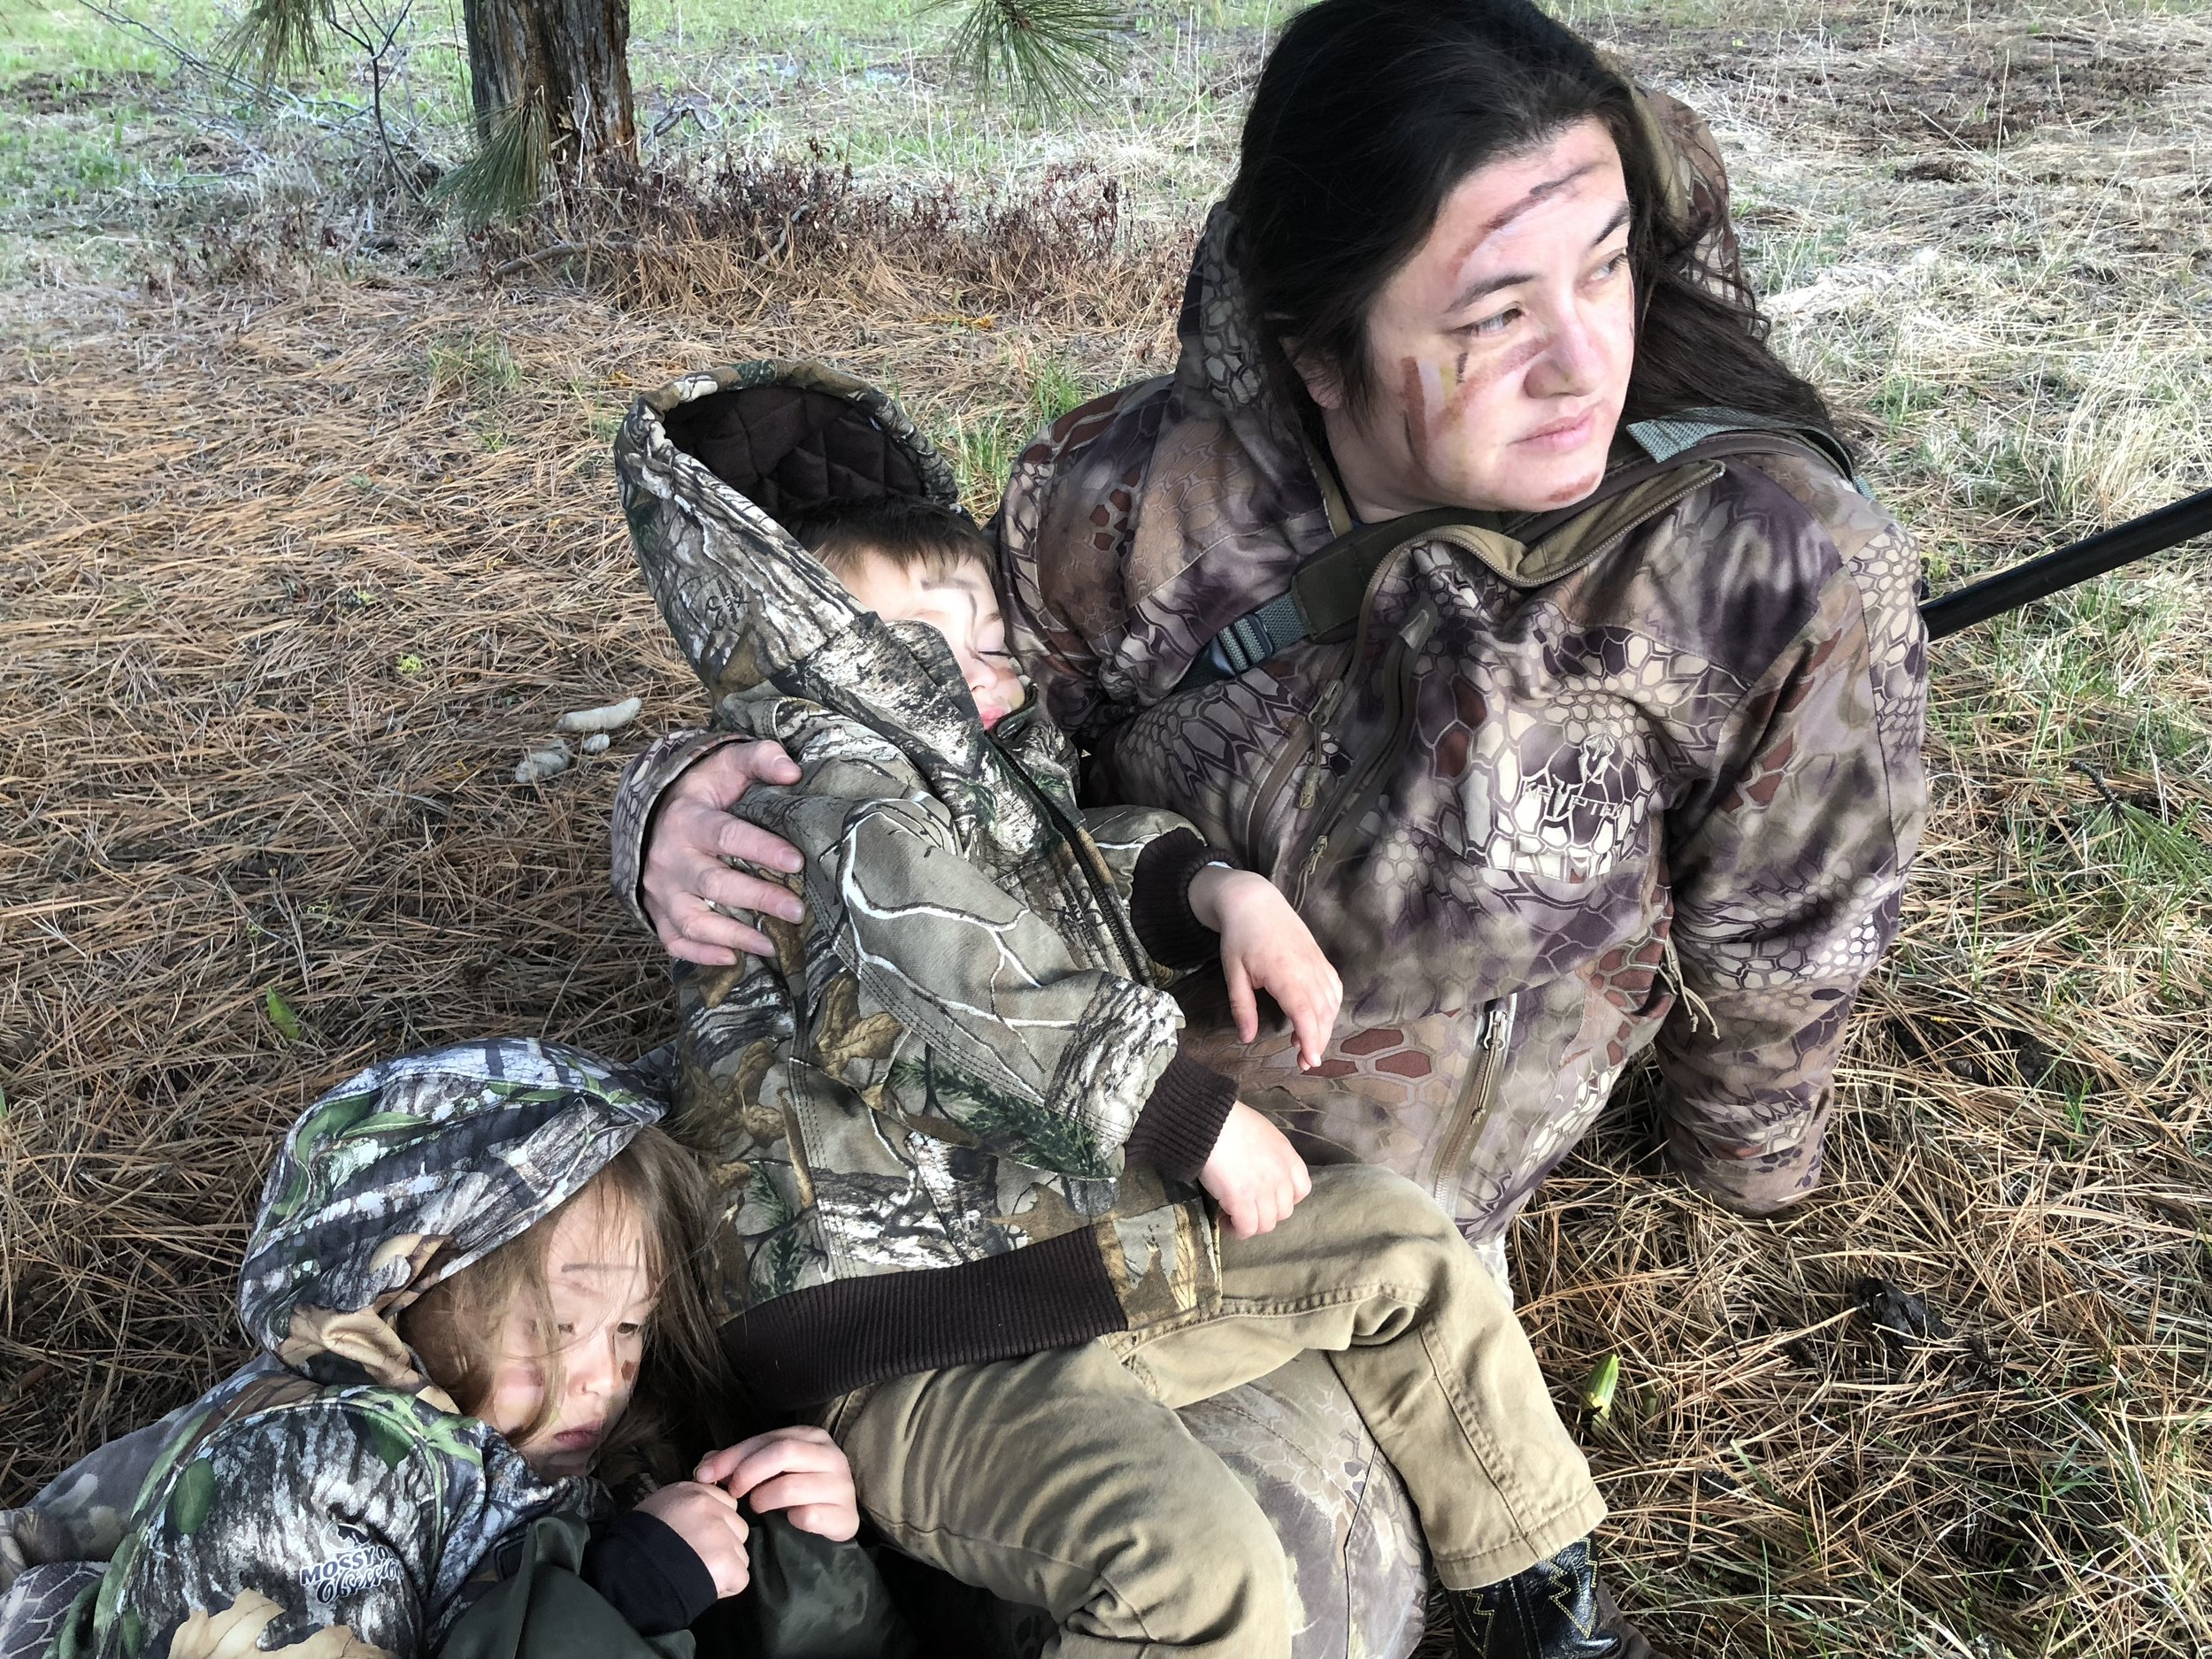 When the family hunting excursion turns into the nap that should have happened earlier in the day...